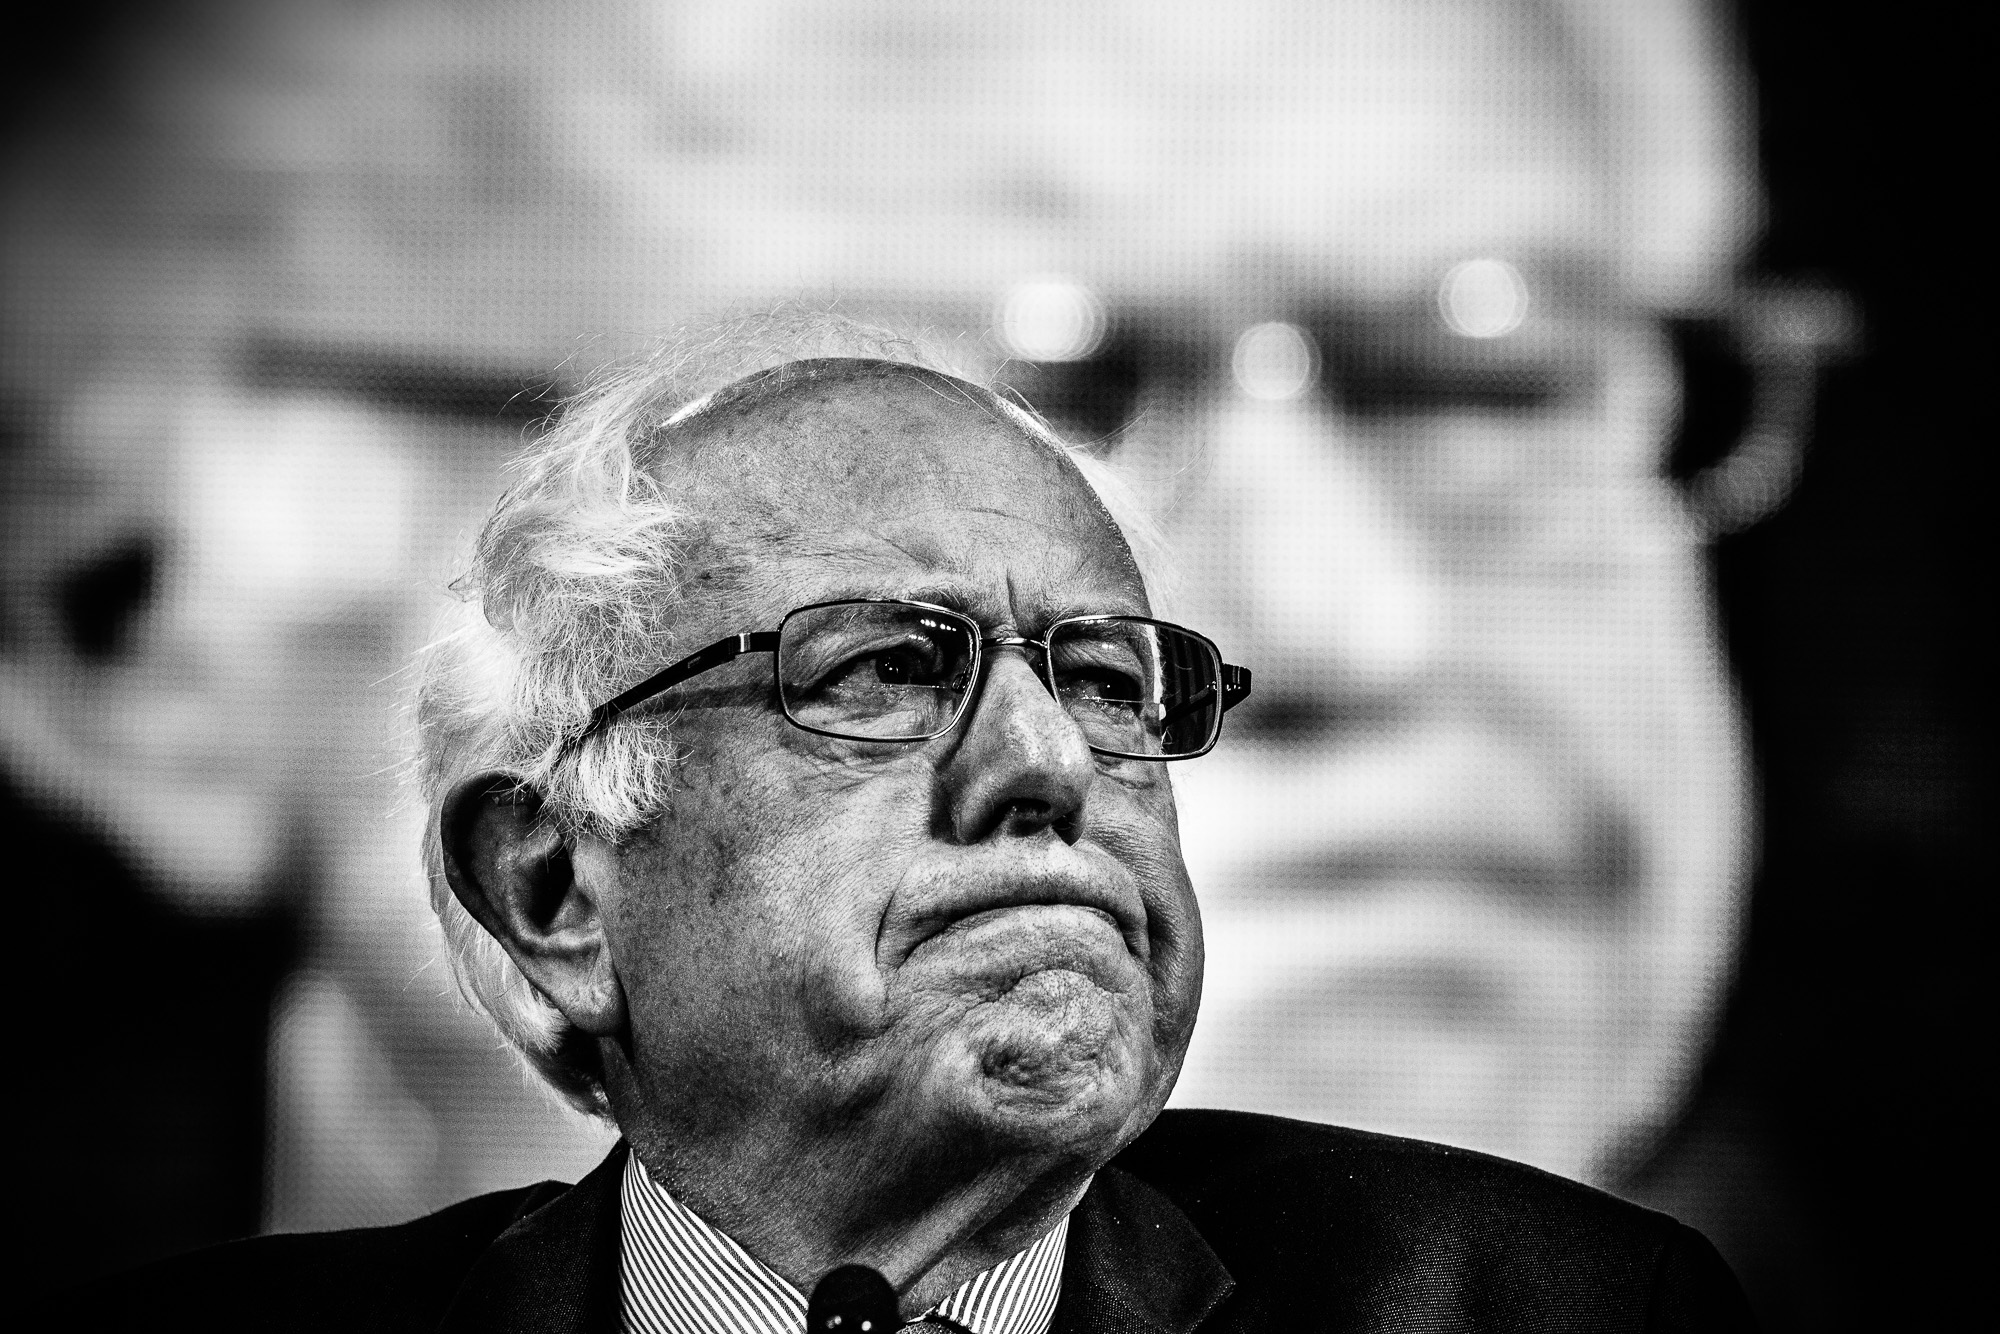 "Fired up by the cheers, chants and thunderous applause of their frenzied supporters, Hillary Clinton and Bernie Sanders vied for the hearts and minds of more than 4,000 Democrats Saturday at the New Hampshire Democratic Party's biggest convention ever. Ayotte to greet Democratic convention-goers with... Sen Ayotte attends opioid abuse roundtable When more than 3,000 Democrats assemble at the Verizon Wireless Arena on Saturday for the New Hampshire Democratic Party convention, they'll find none other than Republican U.S. Sen. Kelly Ayotte on their smartphones More Shea-Porter announces she's running for US House again in... Shea-Porter announces she's running for US House again in 2016 Former three-term U.S. Rep. Carol Shea-Porter made it official Saturday. She is running again for the 1st District U.S. House seat she lost last year to Republican Frank Guinta. More Hillary Clinton received a raucous ovation from her supporters, admitting, ""My heart is racing,"" and in a lengthy speech, struck familiar themes. An hour later, Sanders was greeted with equal enthusiasm by his sign-waving backers. ""Sounds like some people are ready for a political revolution,"" he said with a broad smile."